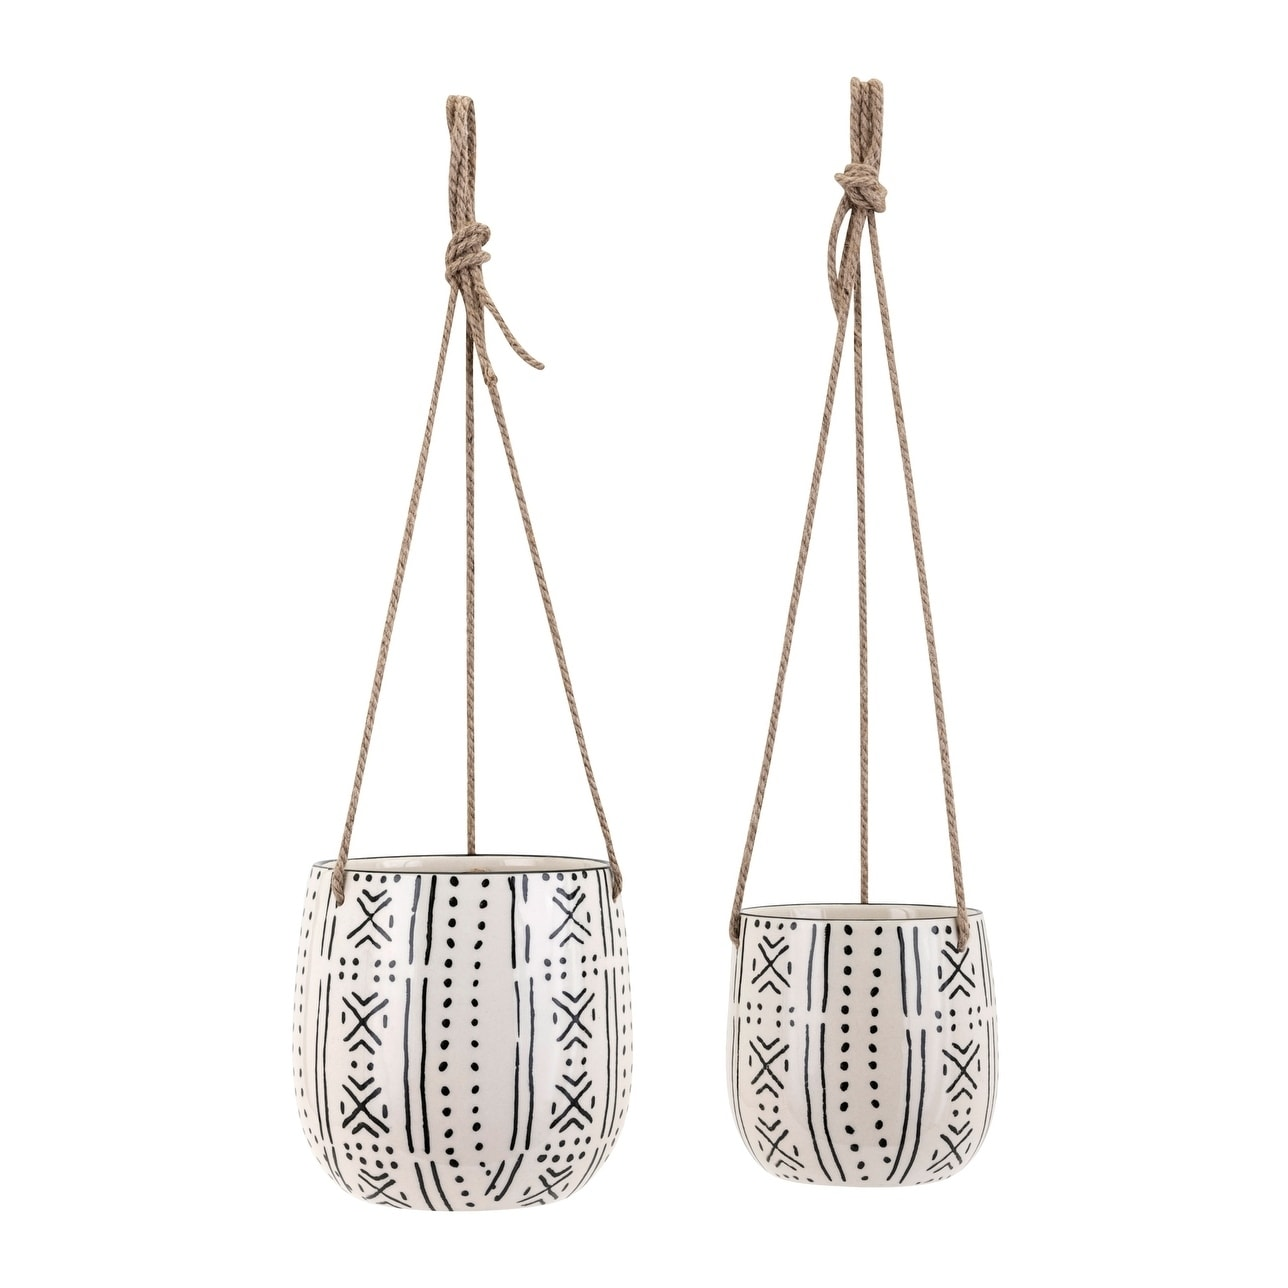 Relli Black And White Hanging Planters Set Of 2